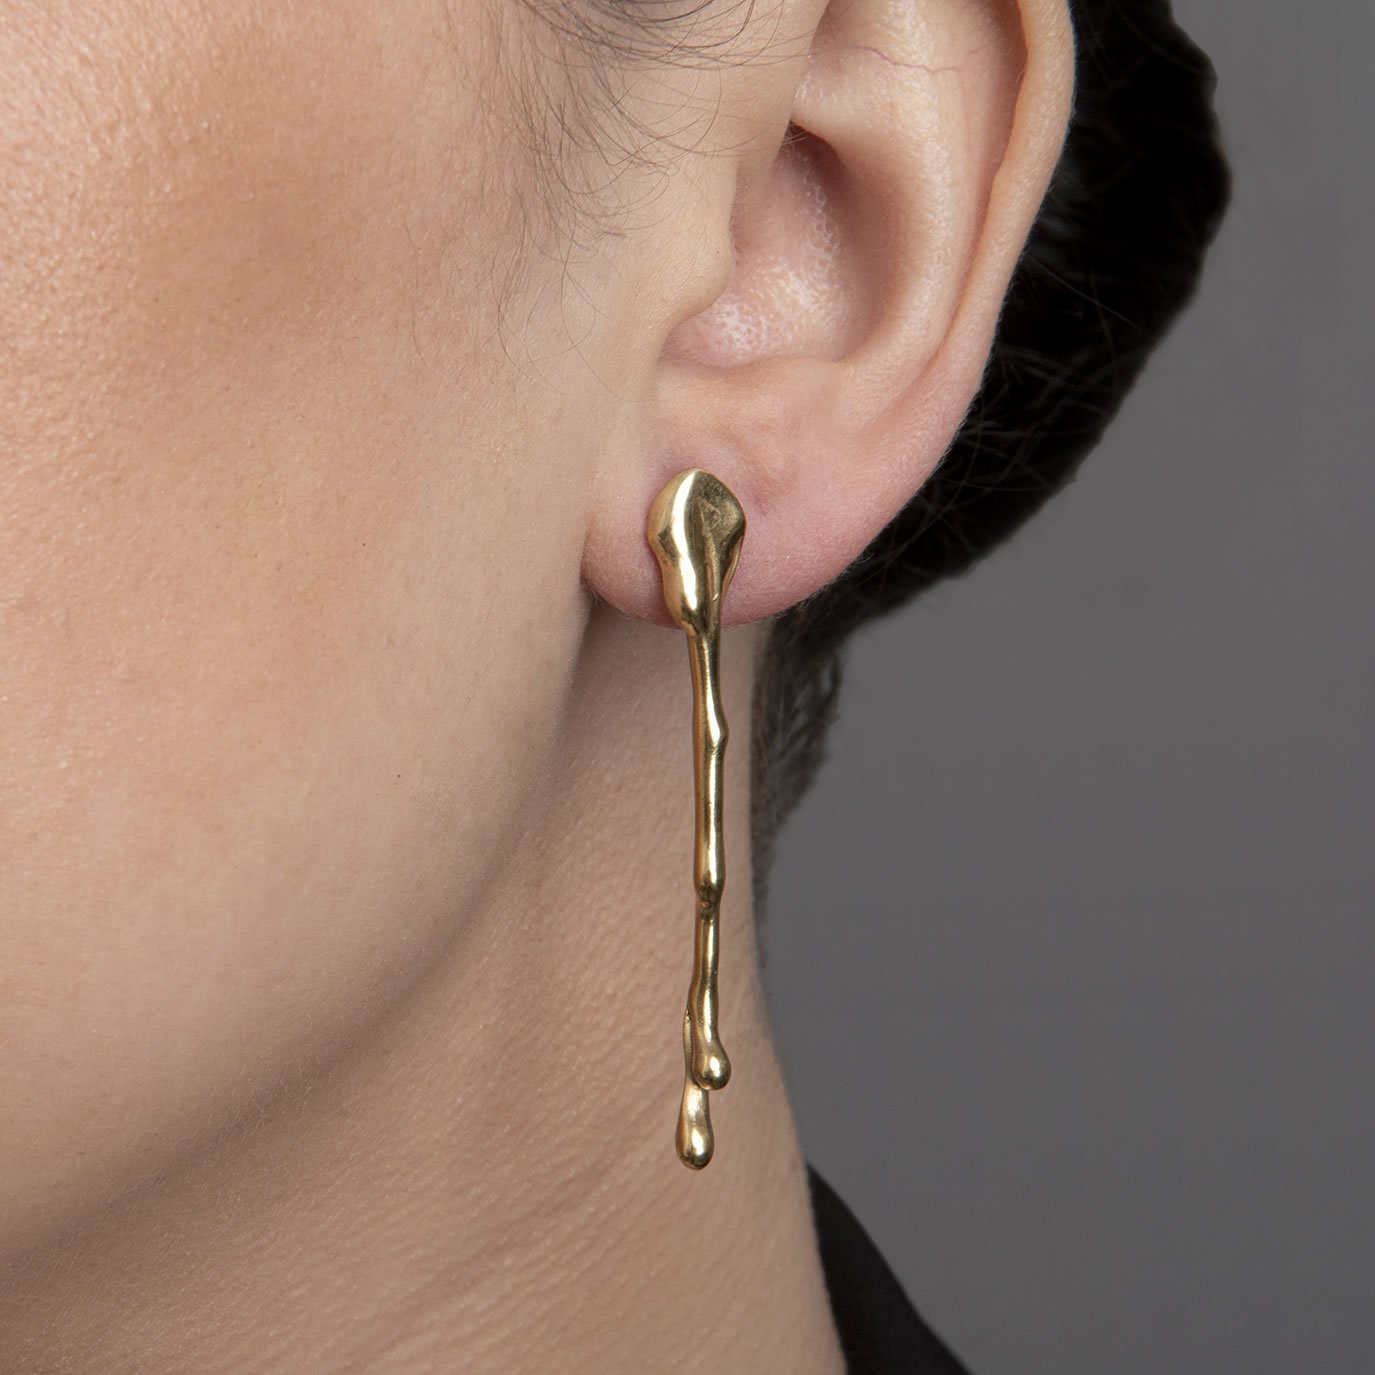 Silver Drip Earrings with Gold Plate by Sheffield Silversmith and Jeweller Rebecca Joselyn